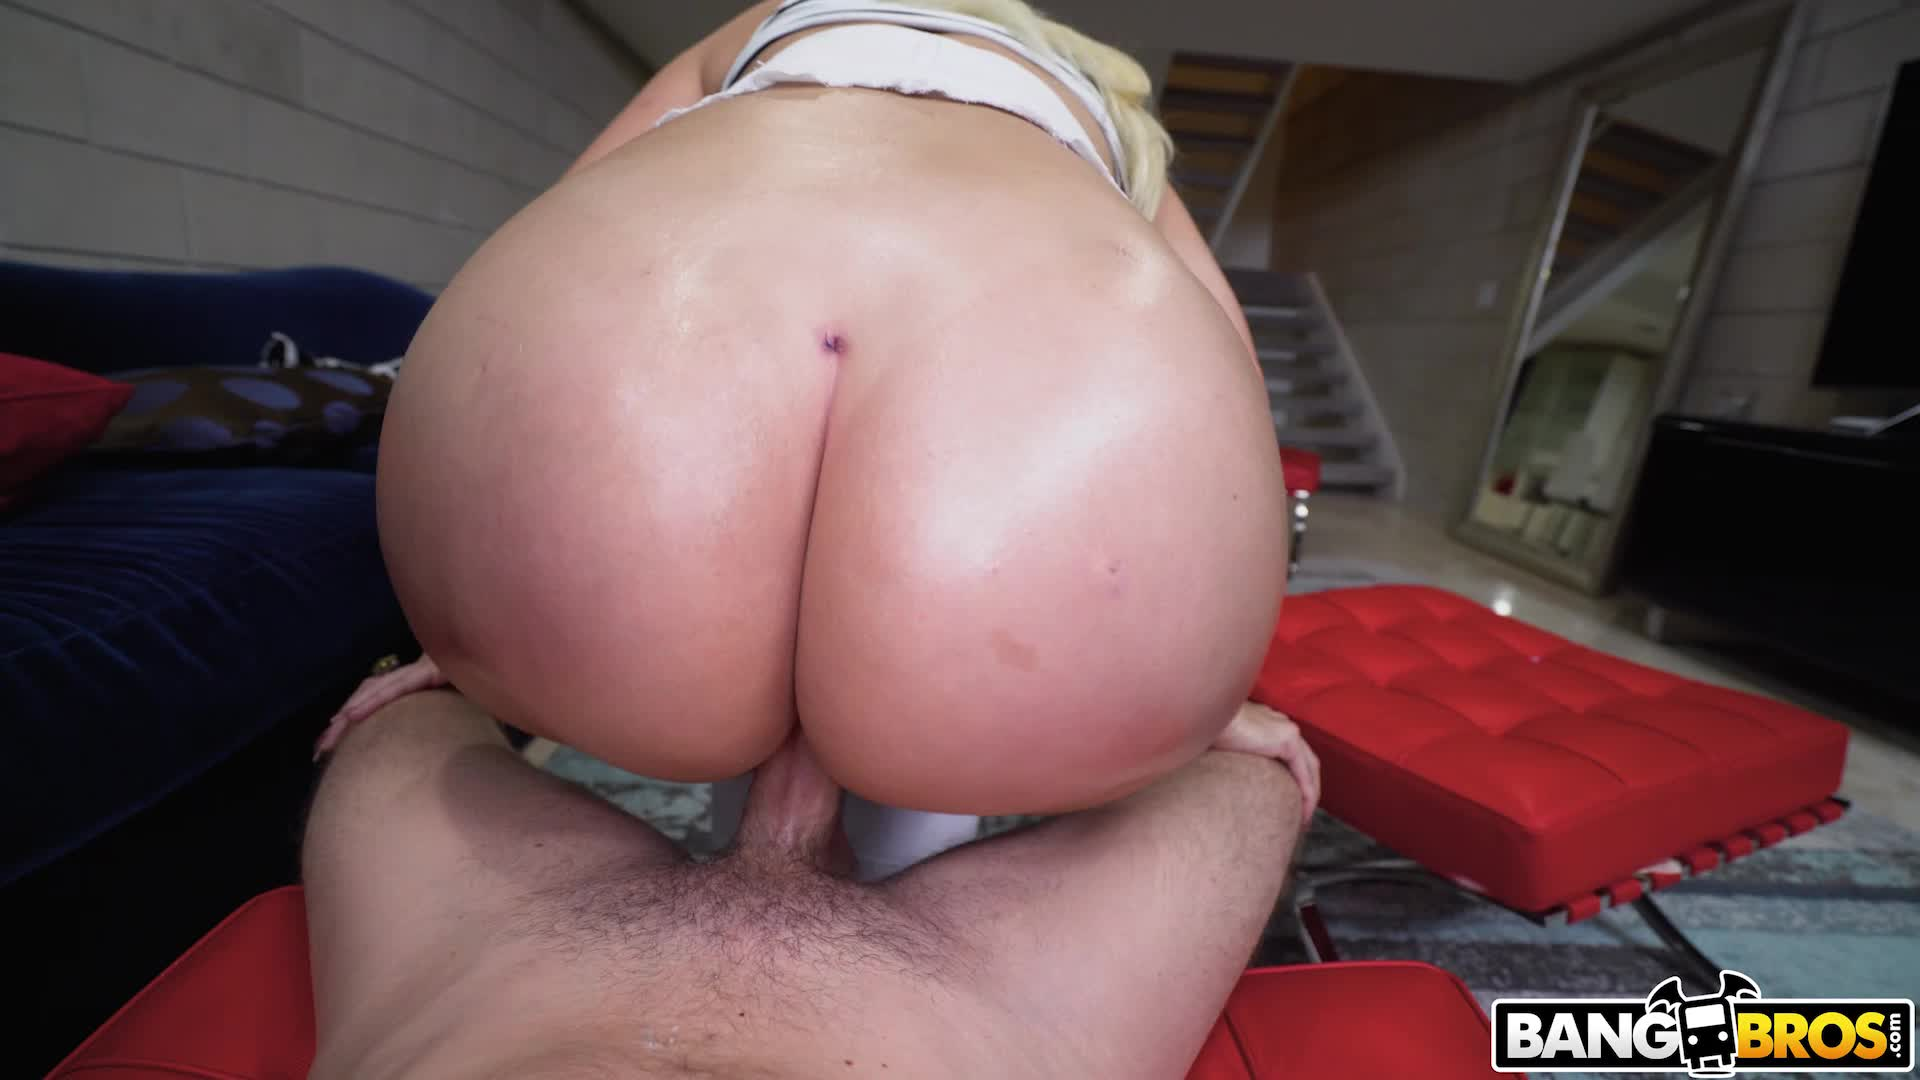 PAWG Alexis Andrew Bouncing Her Big Booty On Cock